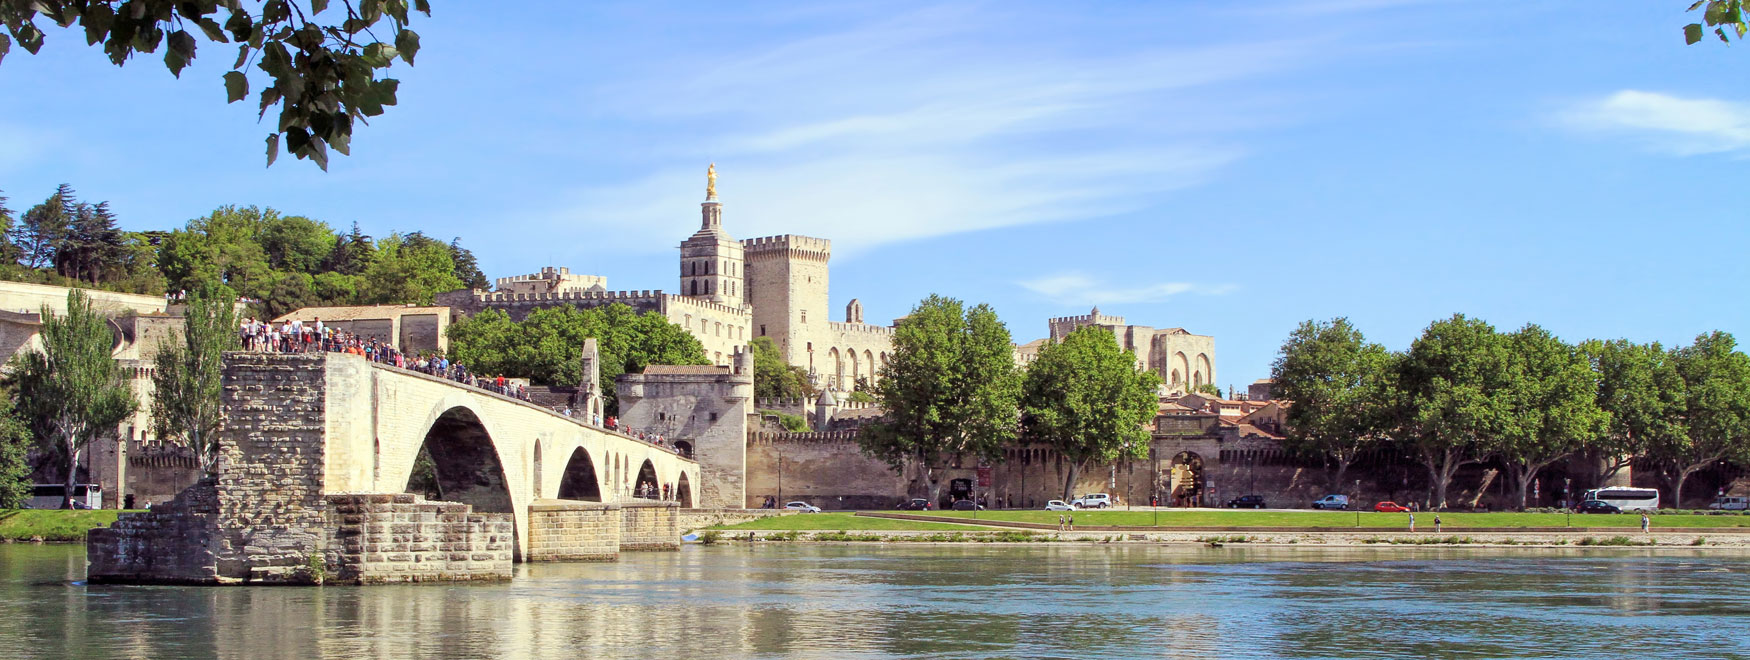 Excursion to Avignon